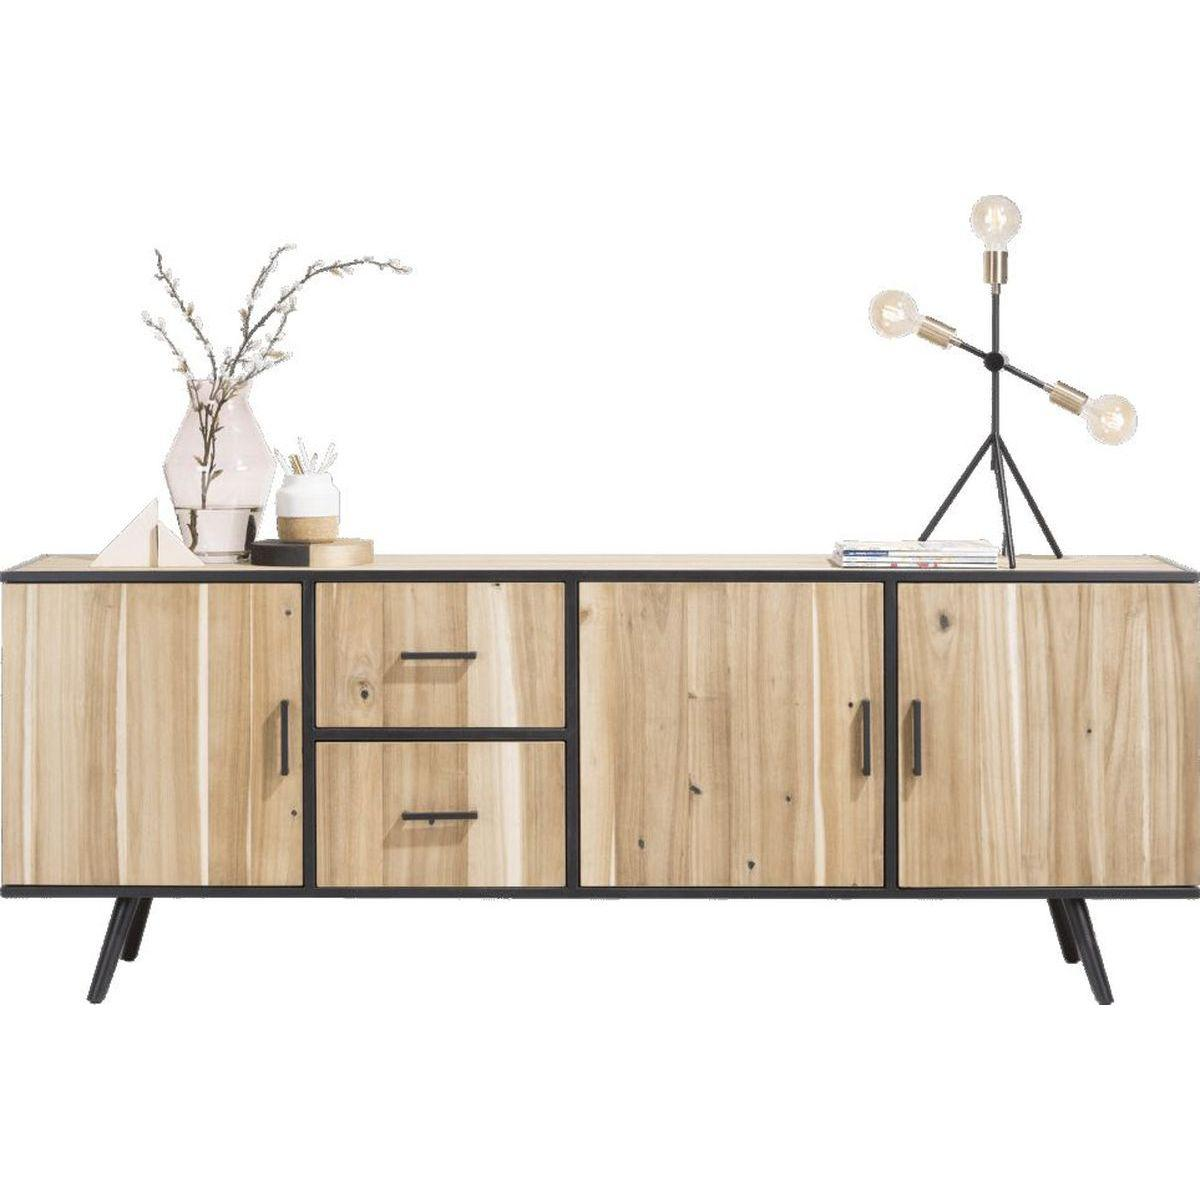 Meuble tv kinna xooon 190cm en bois tramwood abitare living for Meuble xooon